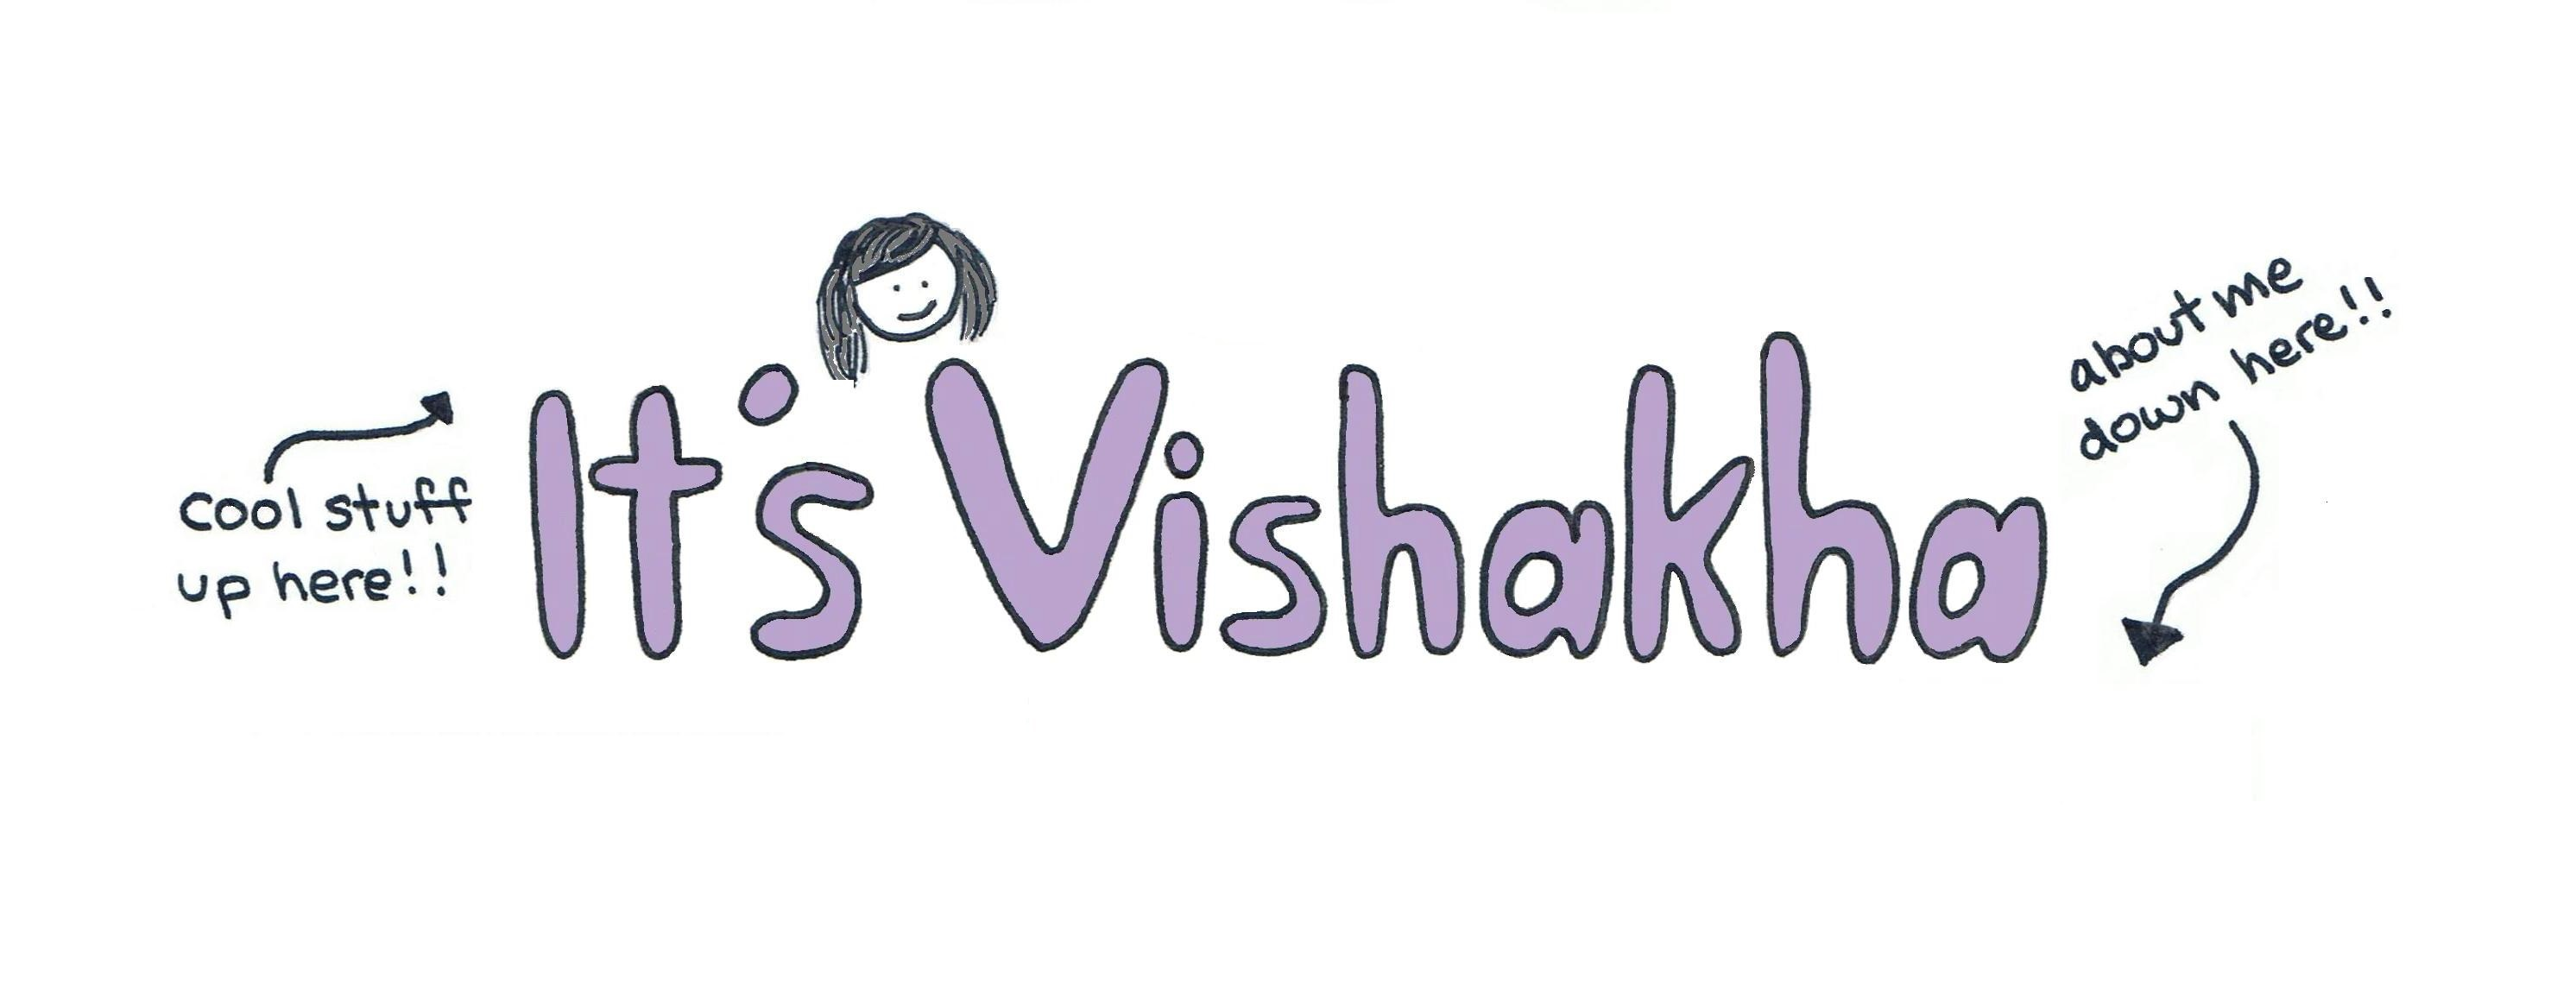 It's Vishakha